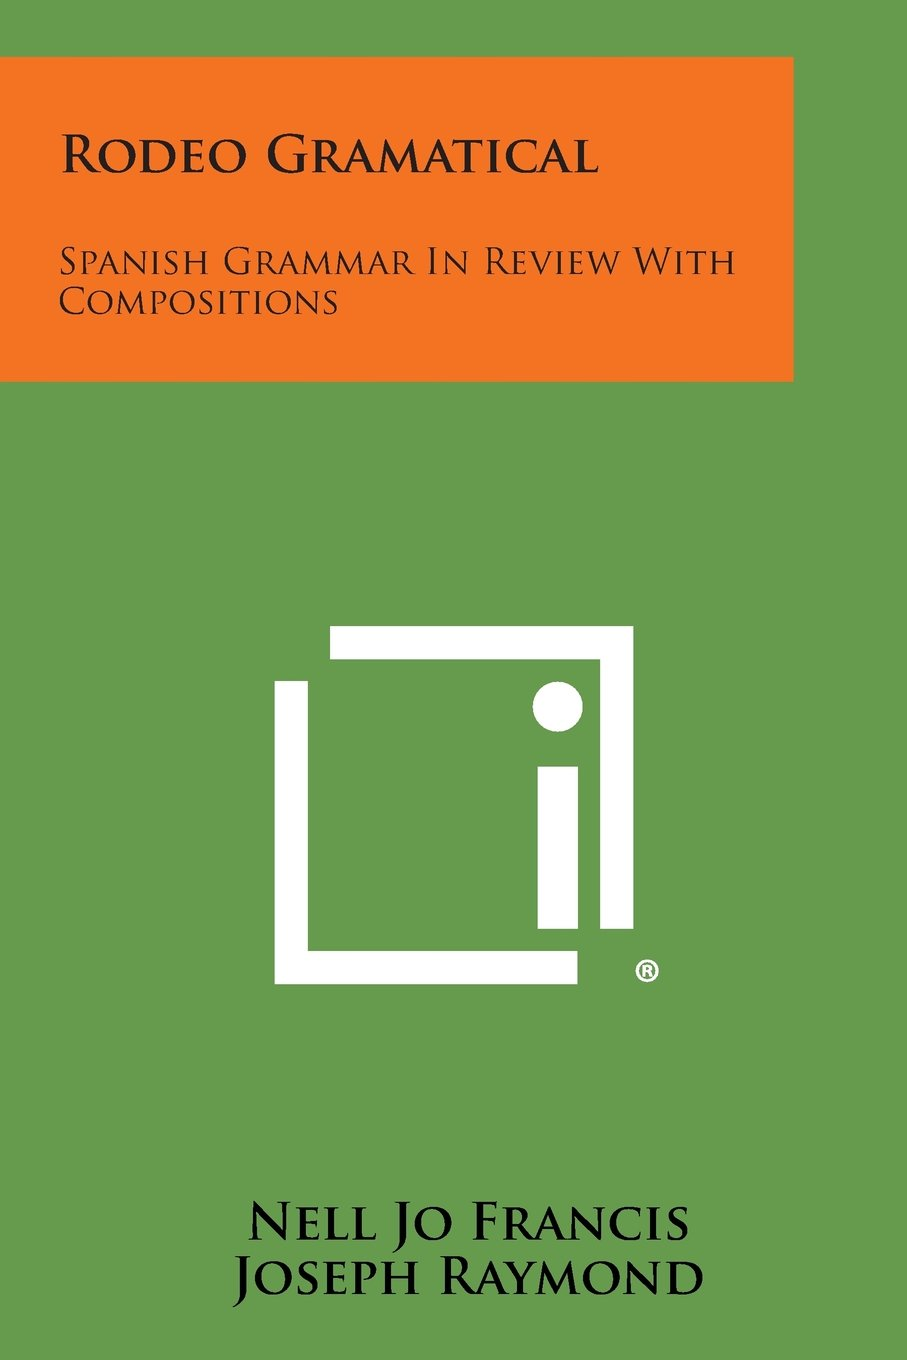 Rodeo Gramatical: Spanish Grammar in Review with Compositions PDF